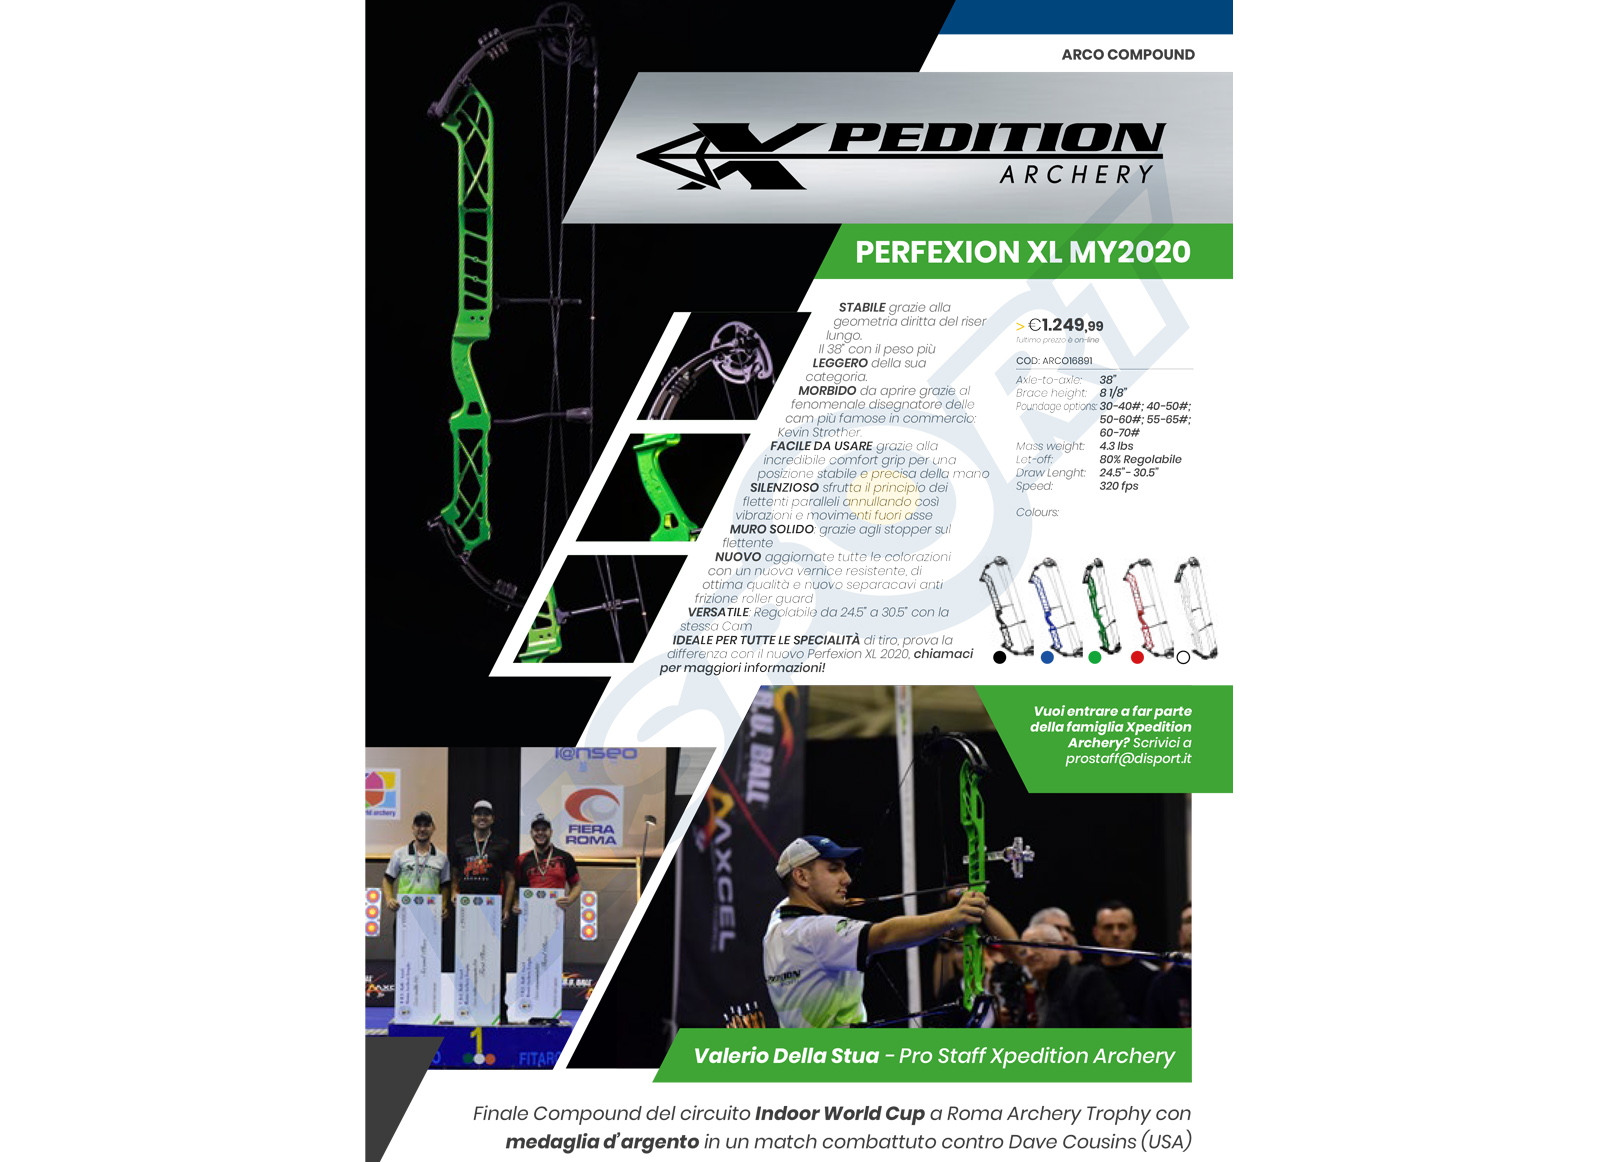 XPEDITION ARCO COMPOUND PERFEXION XL MY2020